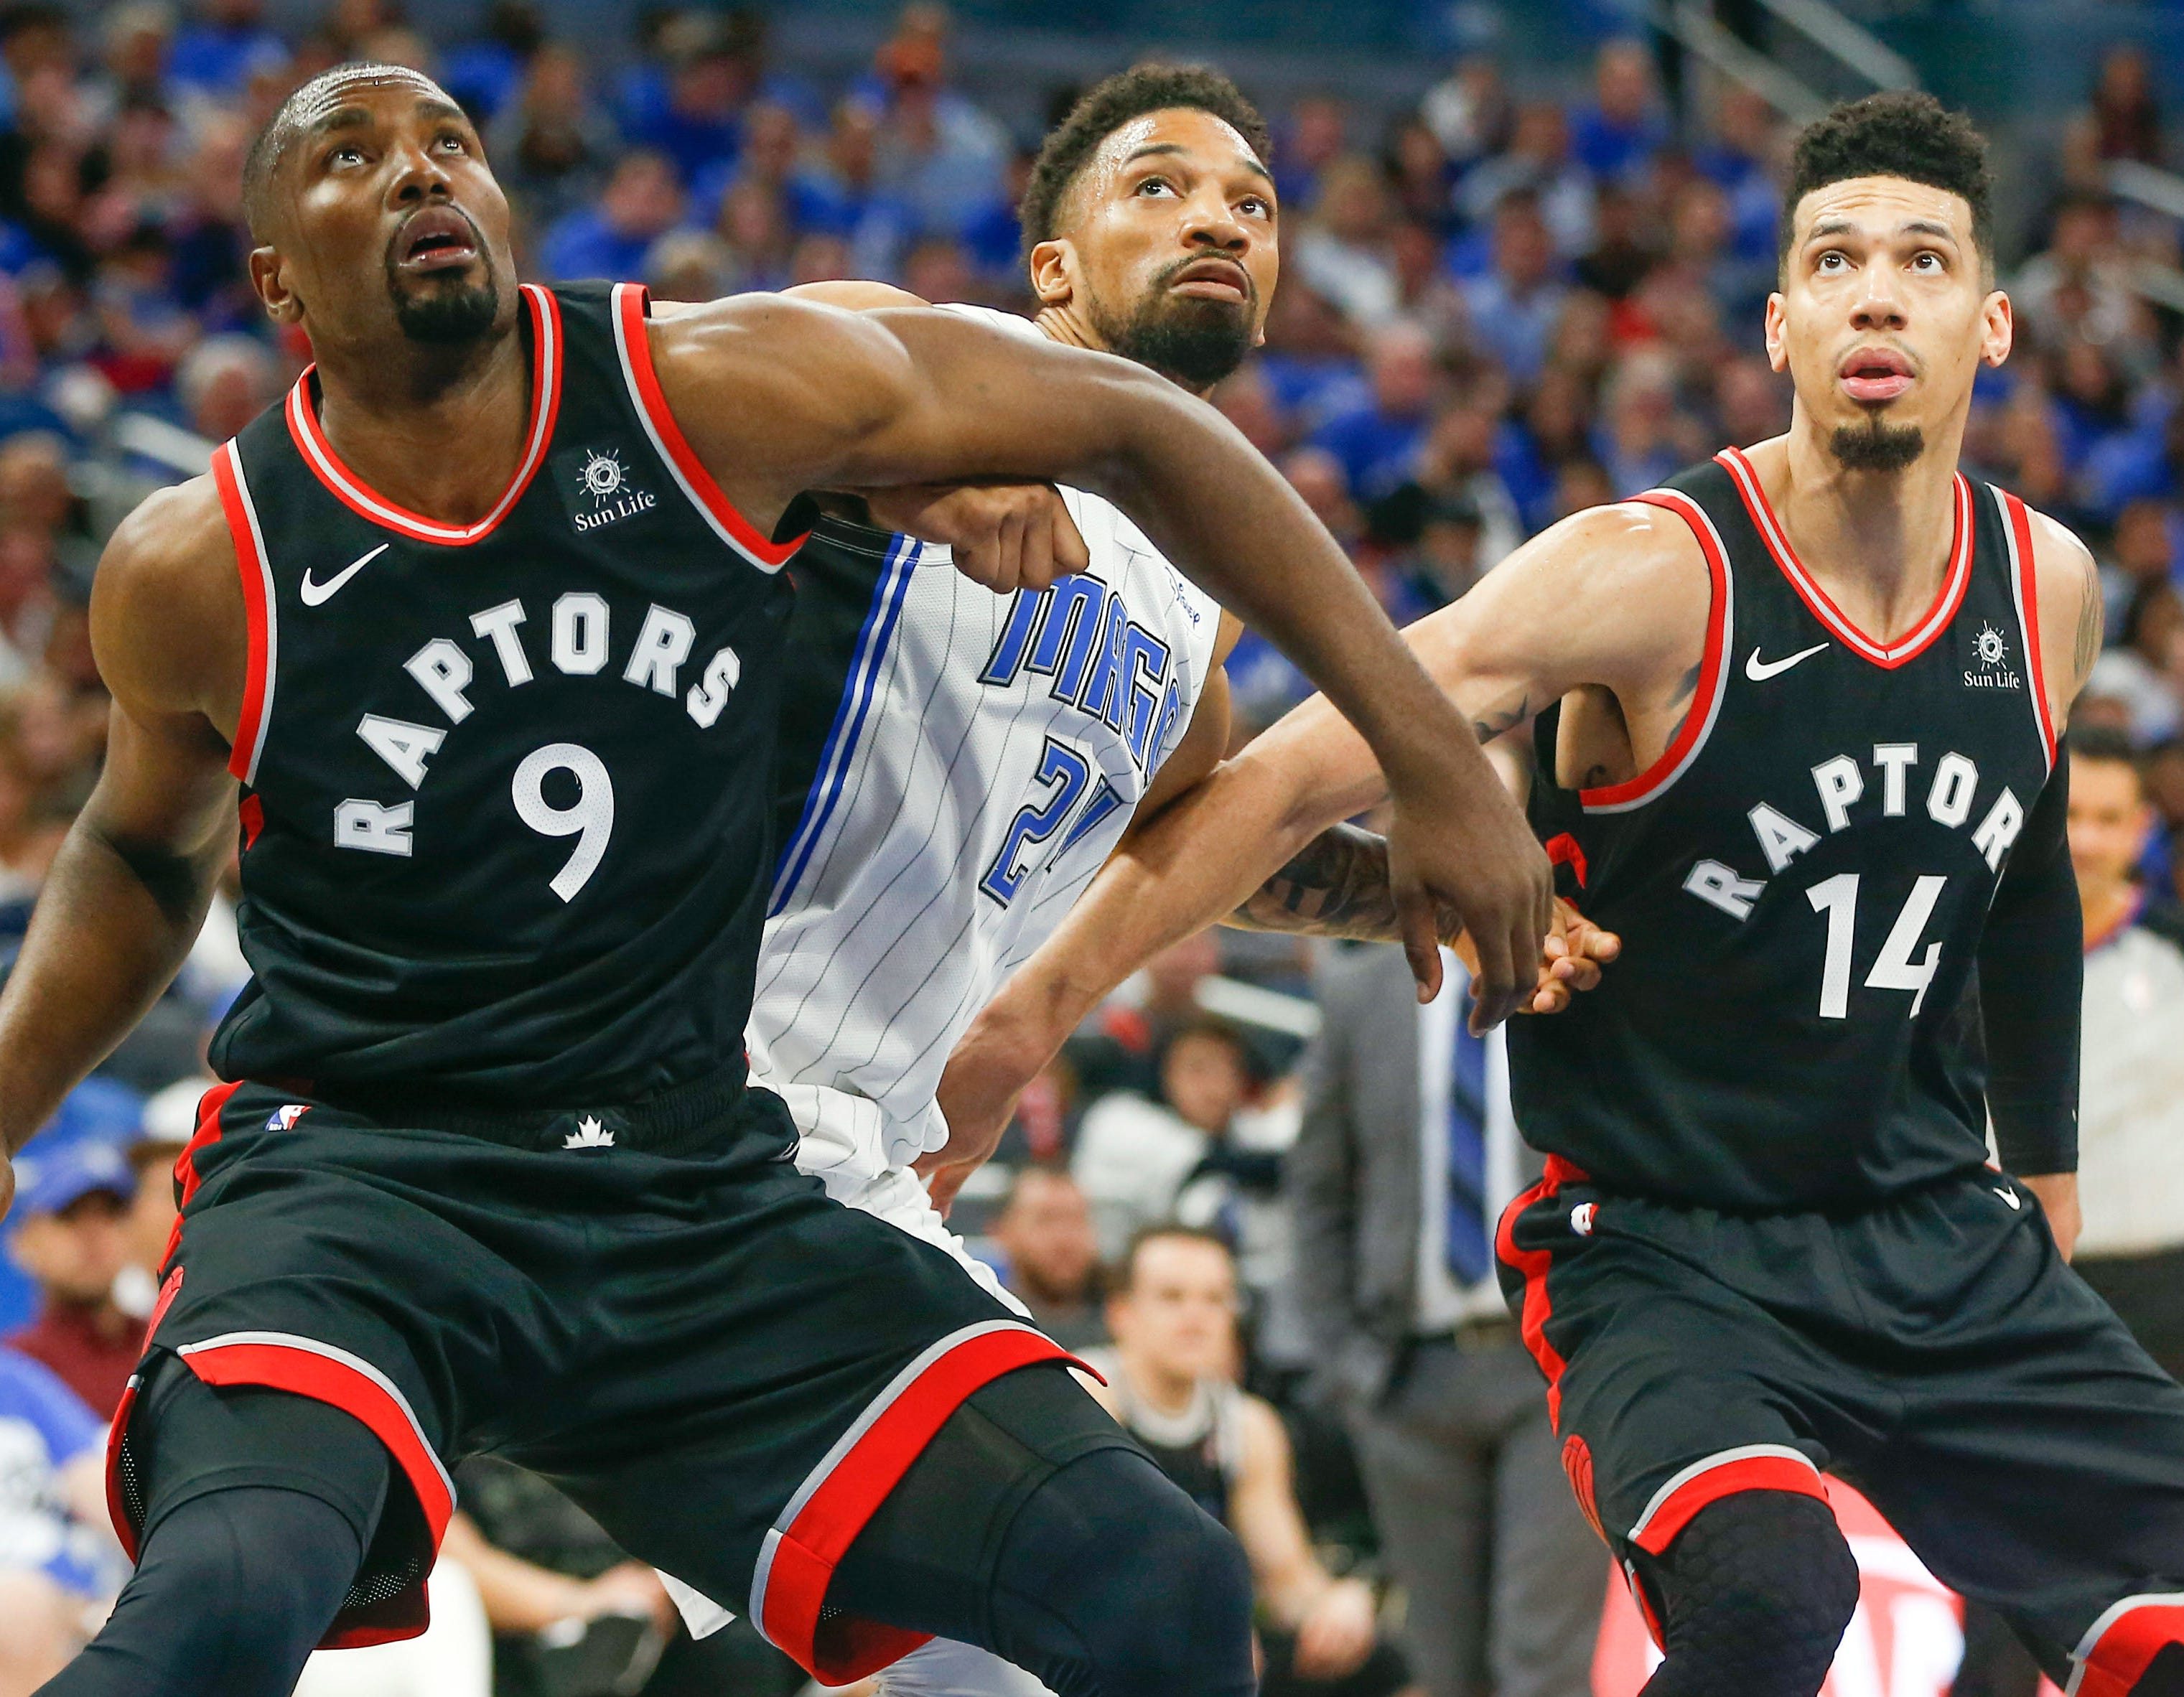 April 21: Magic center Khem Birch (24) fights for rebound position between Raptors center Serge Ibaka (9) and guard Danny Green (14) during Game 4.